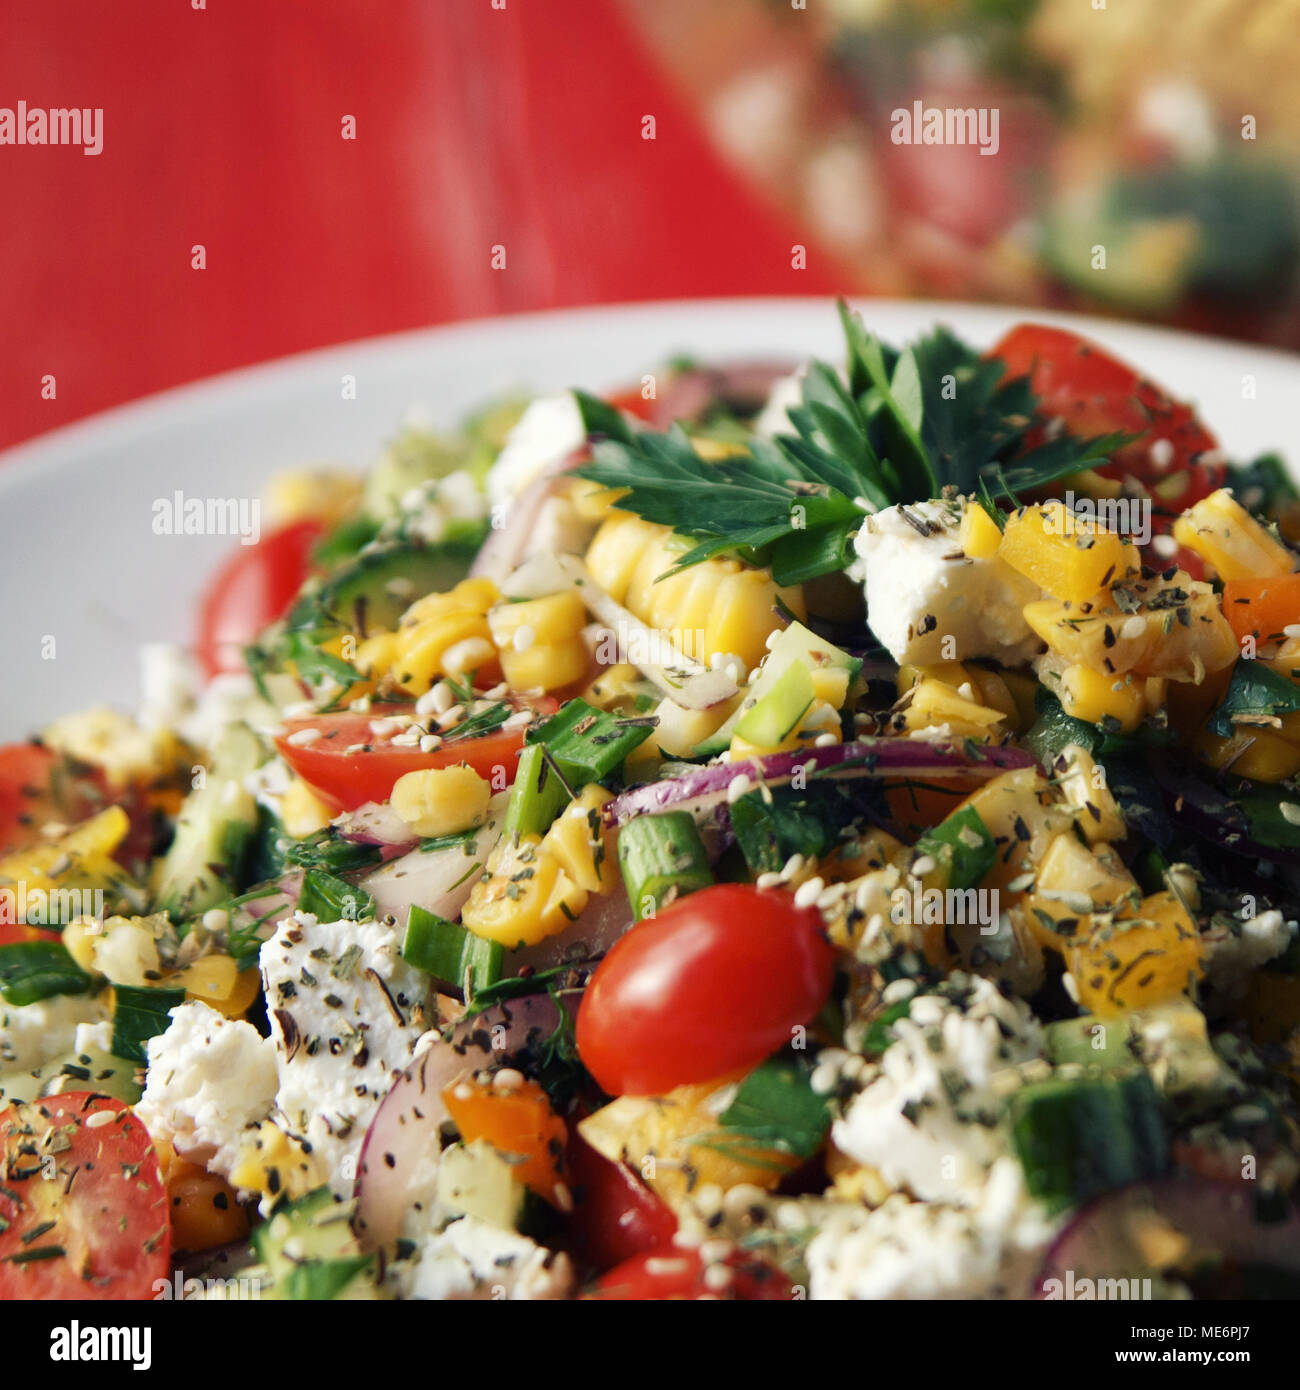 Incredible Colorful Vegetable Mix Simple Low Calories Salad Cherry Interior Design Ideas Clesiryabchikinfo